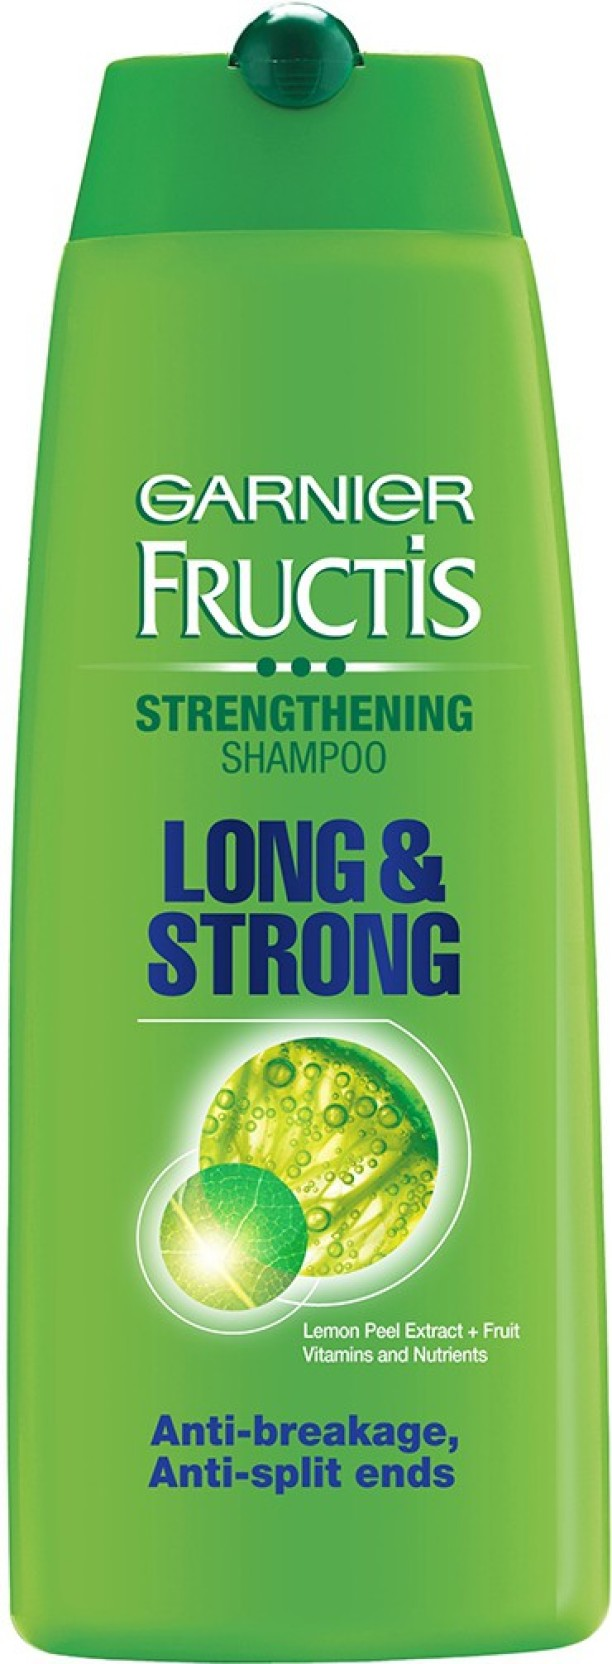 Garnier Fructis Long Strong Shampoo Price In India Buy Clear Ampamp Soft 340 Ml Home